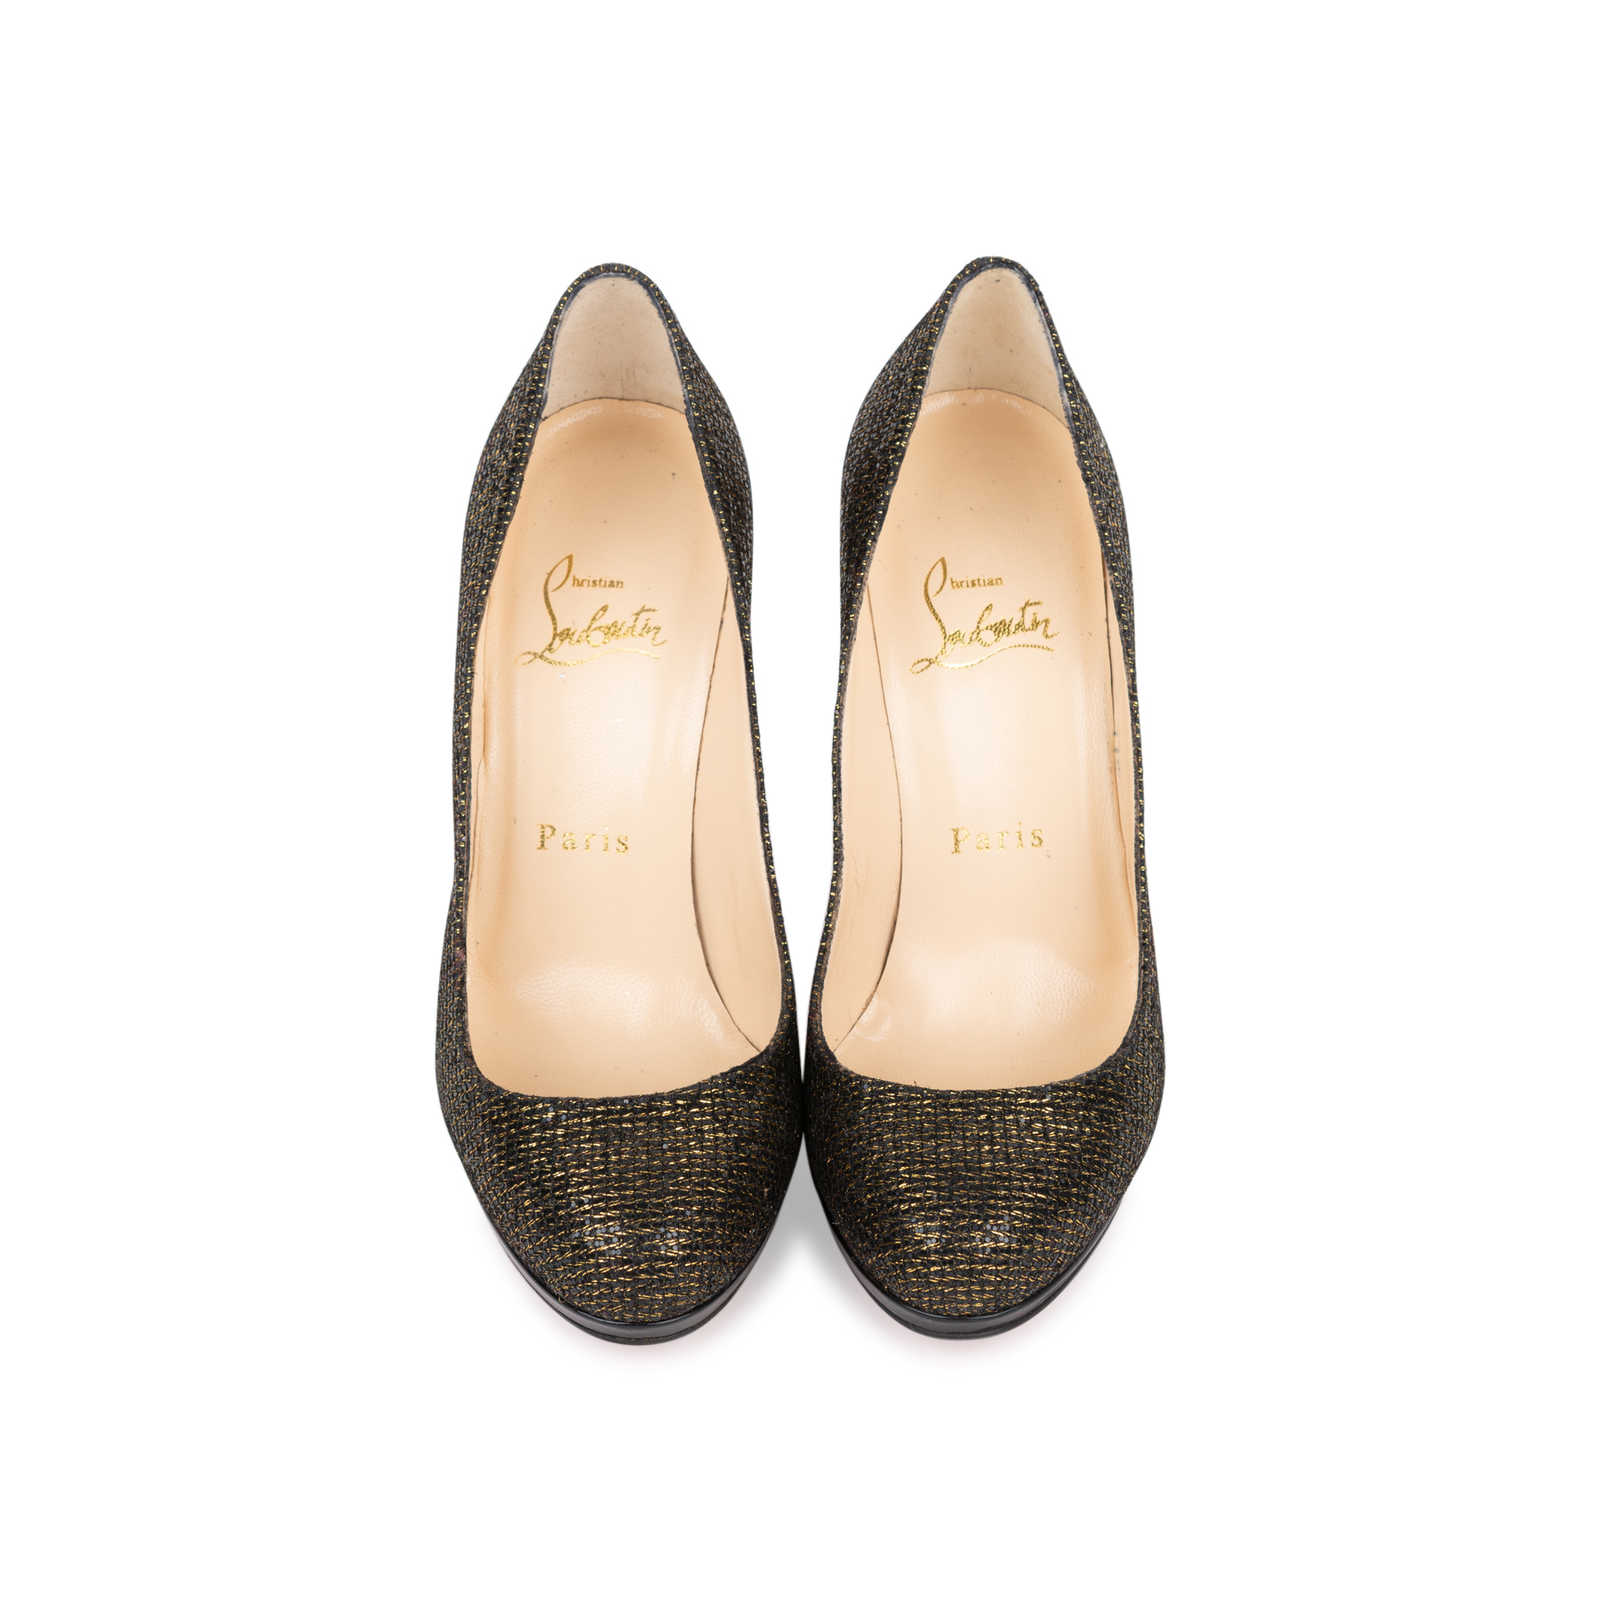 529bc9b98827 Authentic Second Hand Christian Louboutin Filo Glitter Pumps  (PSS-558-00011) ...